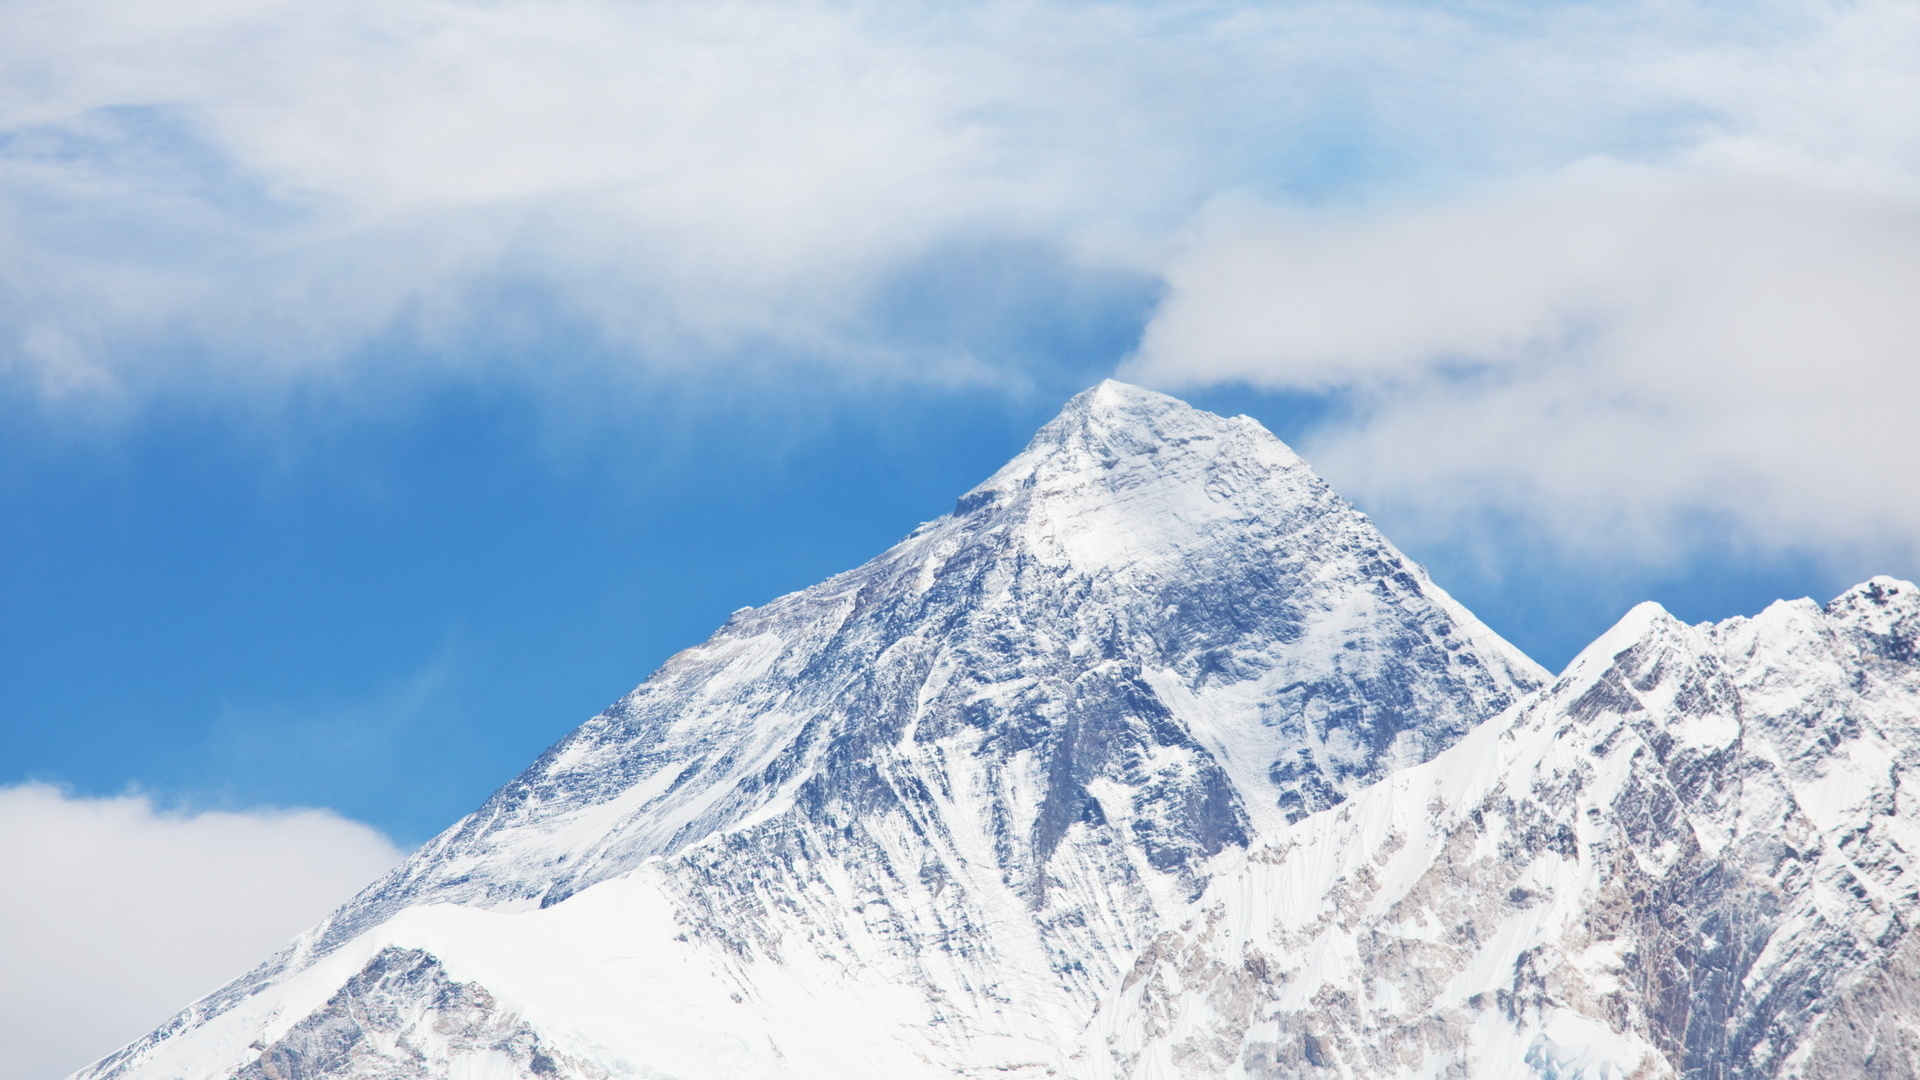 HD Mount Everest 4k Images for Ipad